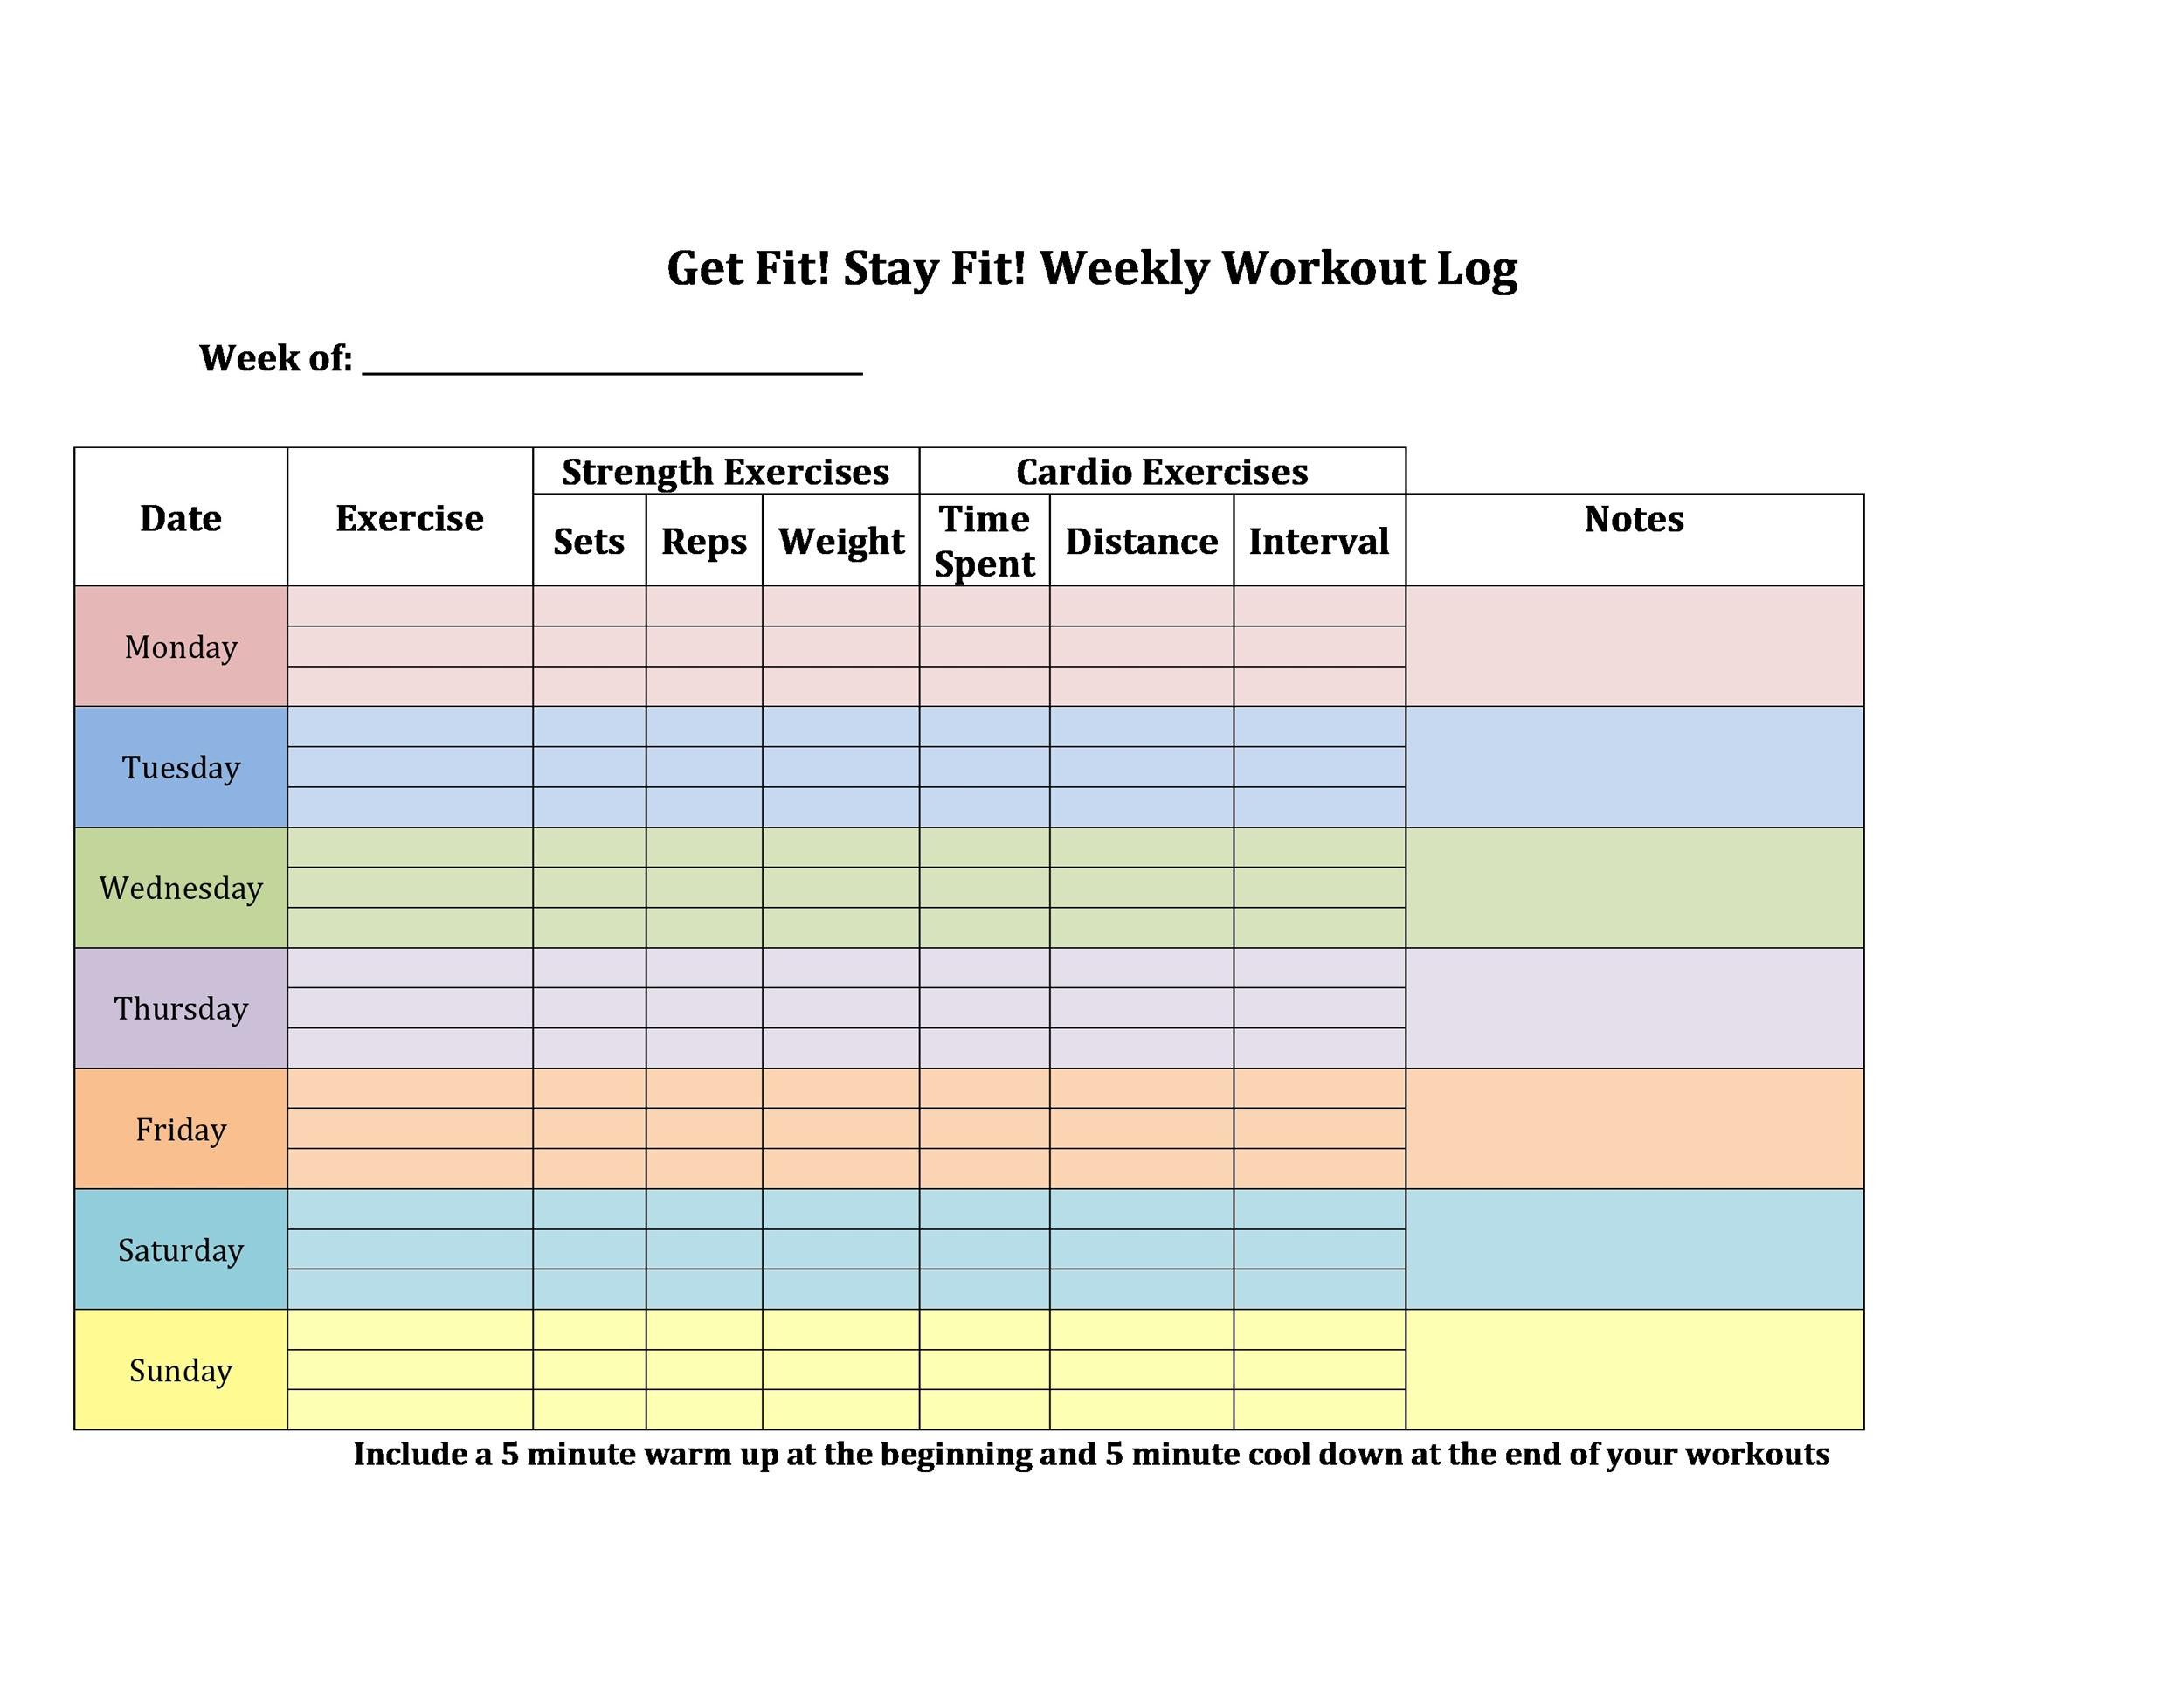 Free Workout Log Template Excel | Kayaworkout.co